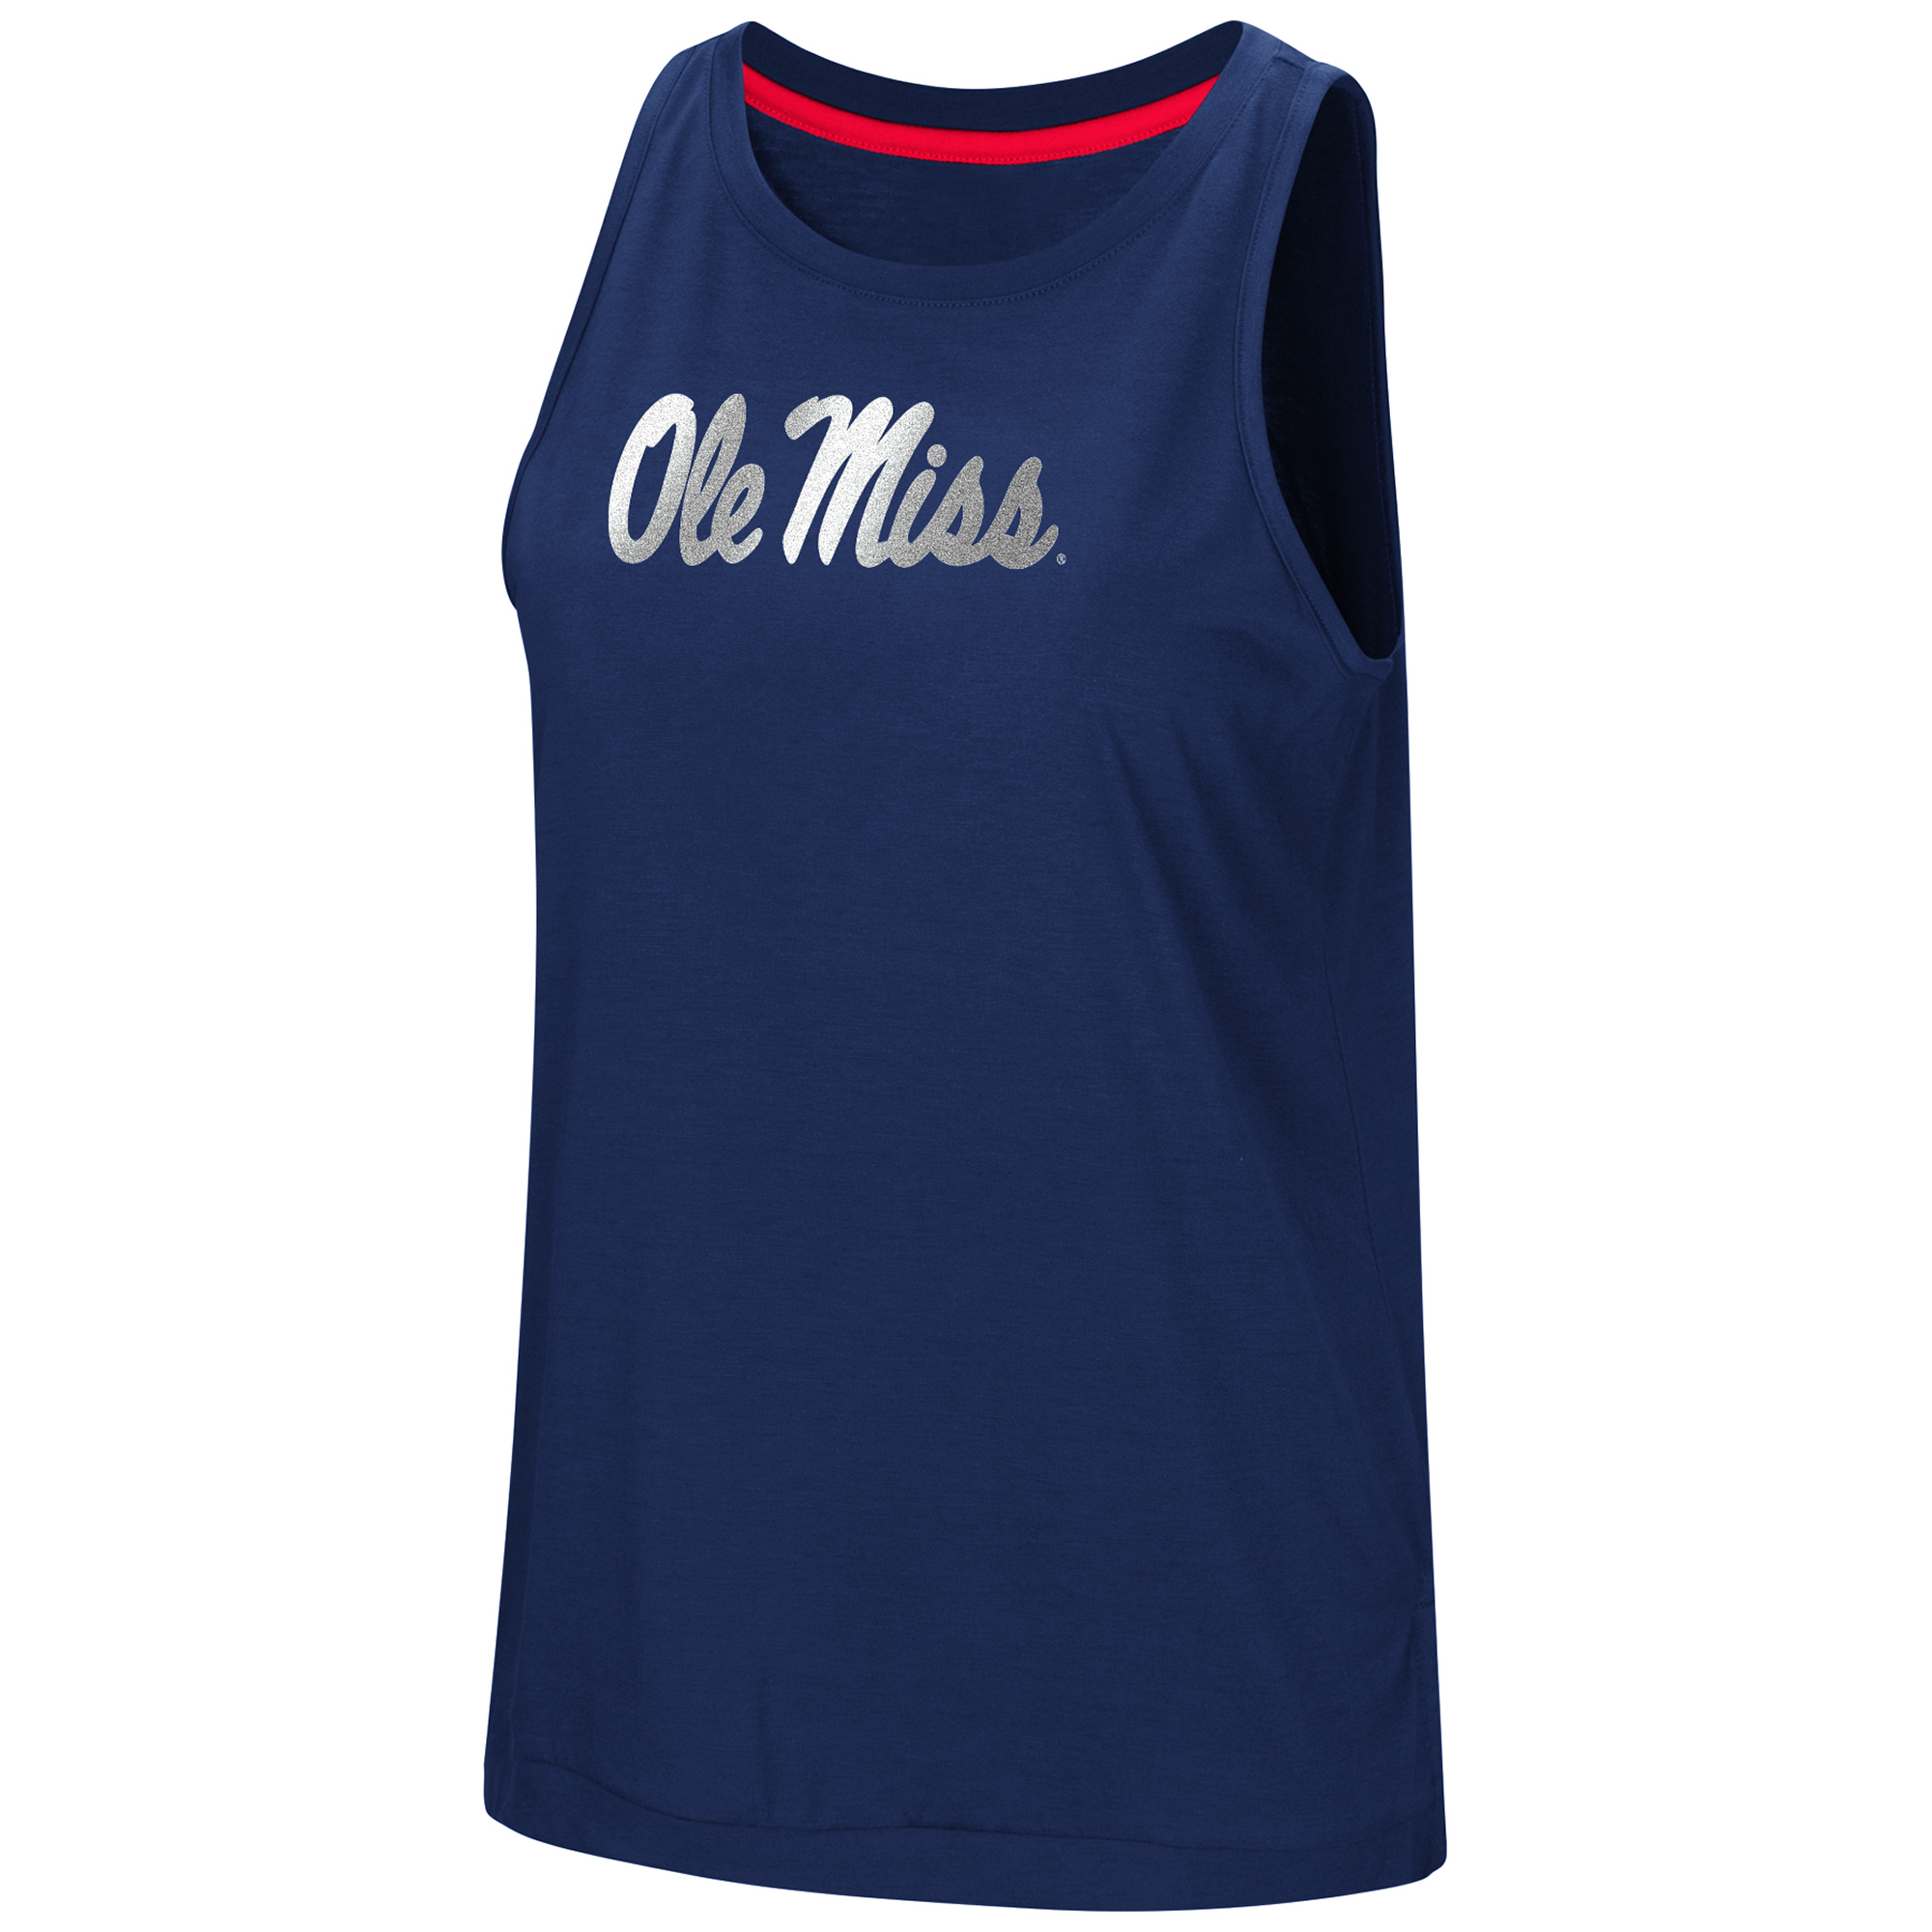 Womens Bet on Me Muscle Tank Top